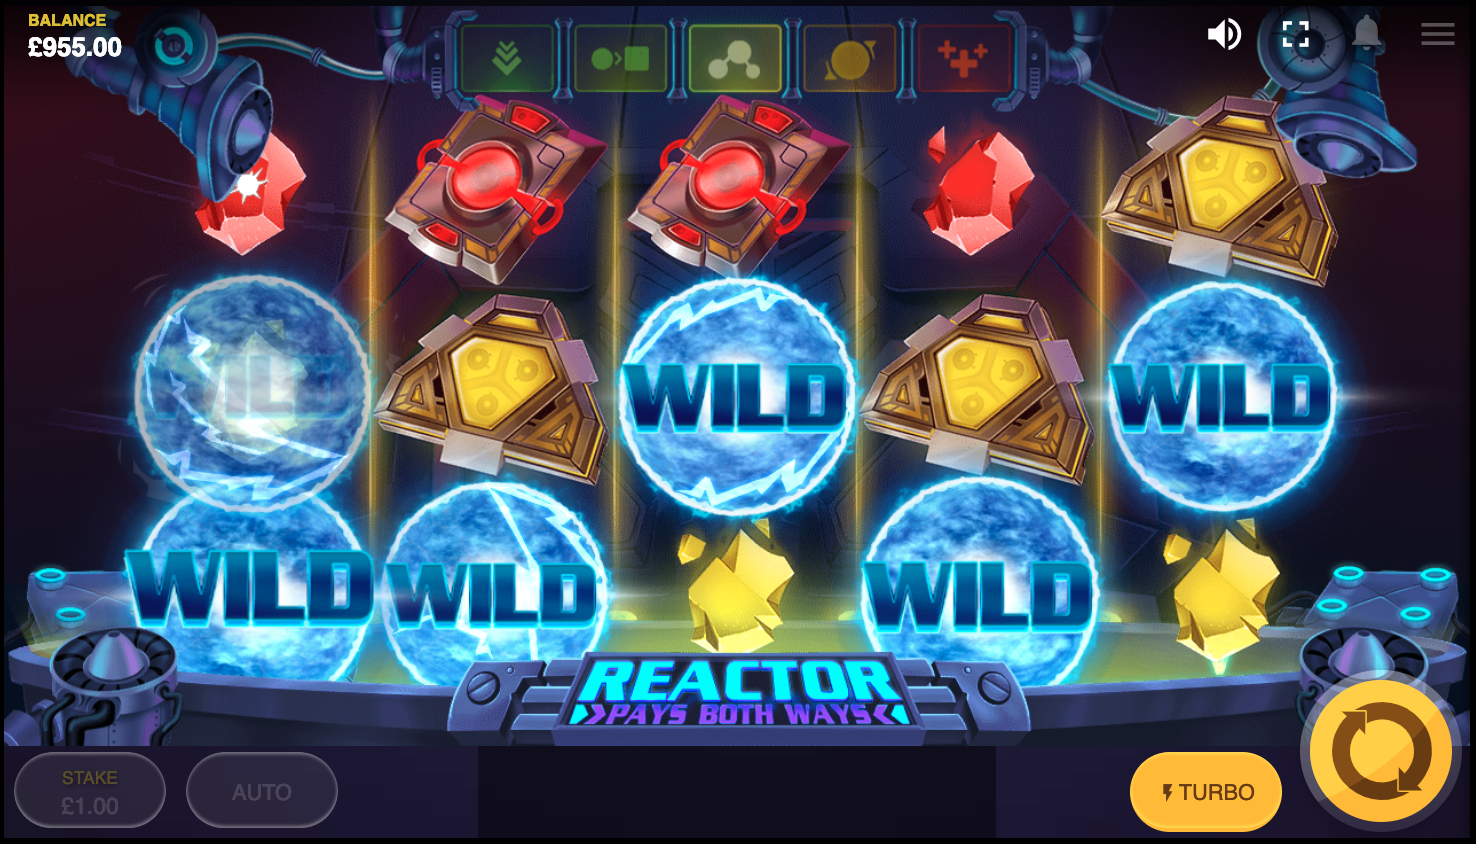 Reactor slot 5 Wilds win